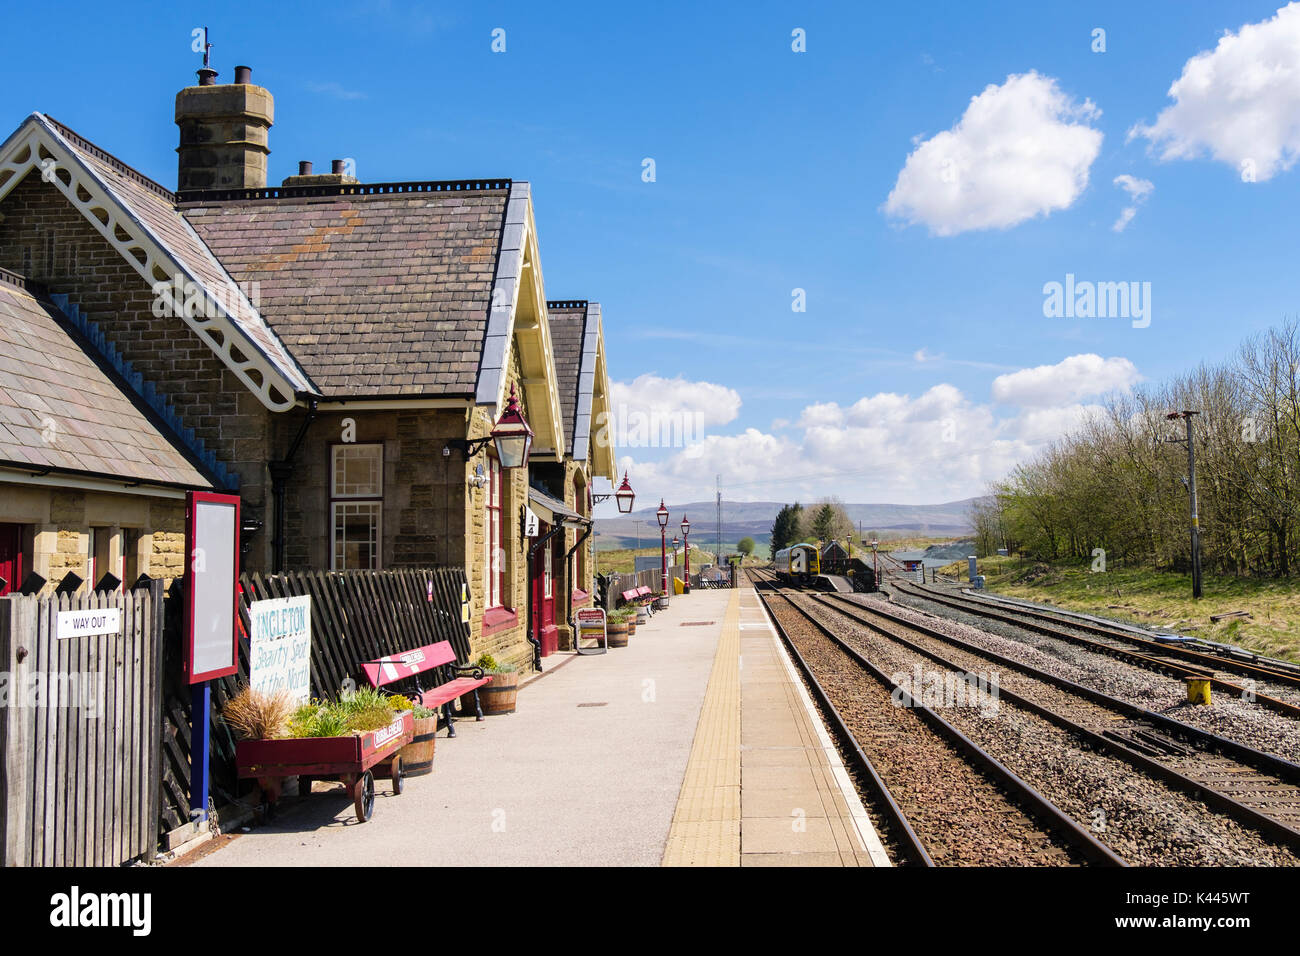 Passenger train stopped at Ribblehead station on Settle to Carlise railway line. Yorkshire Dales National Park West Riding North Yorkshire England UK - Stock Image